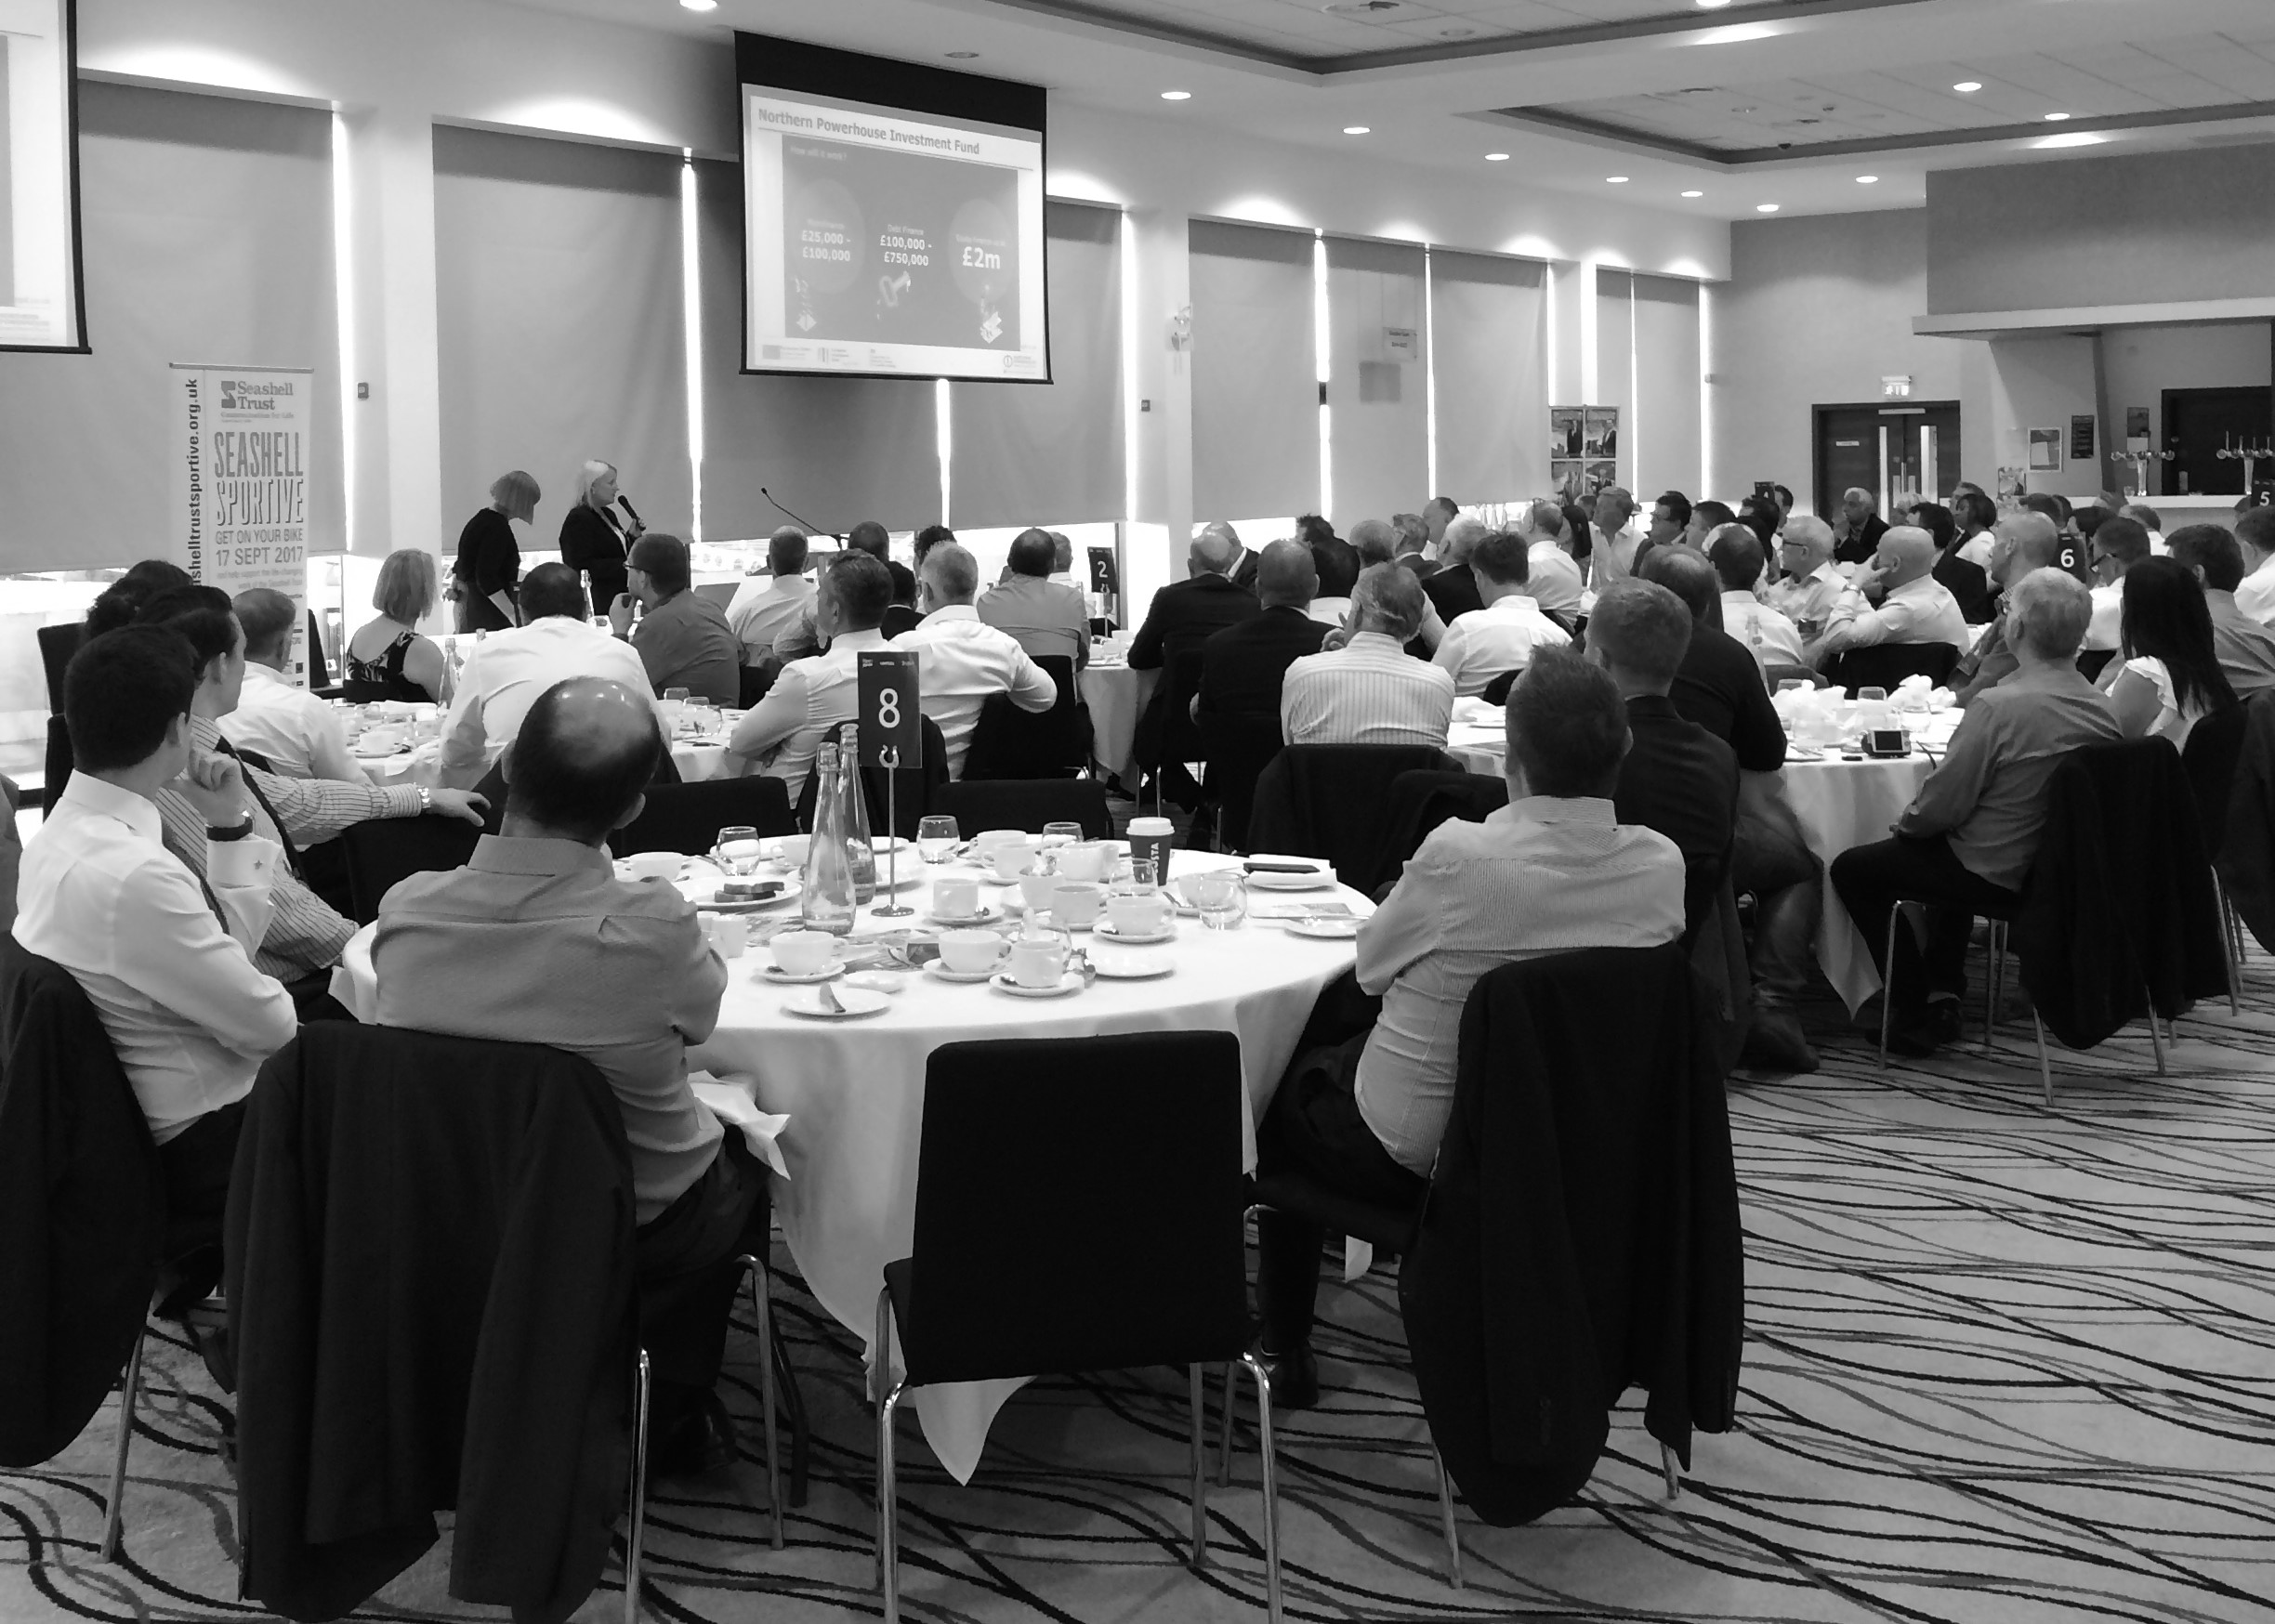 K-Club Manchester Breakfast Event 6.7.17